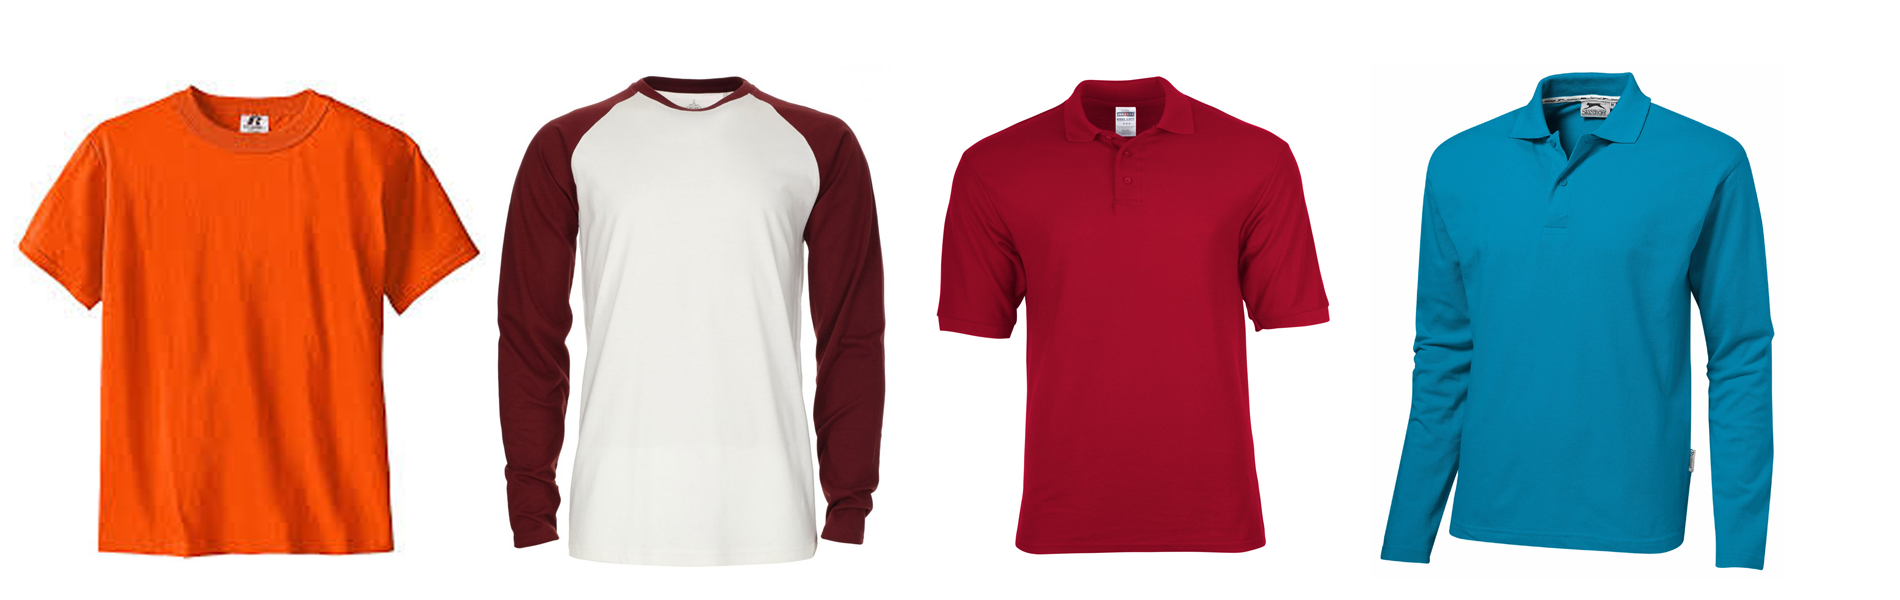 Custom Workwear, Polo. Tees, Sports Shirts, Hoodie